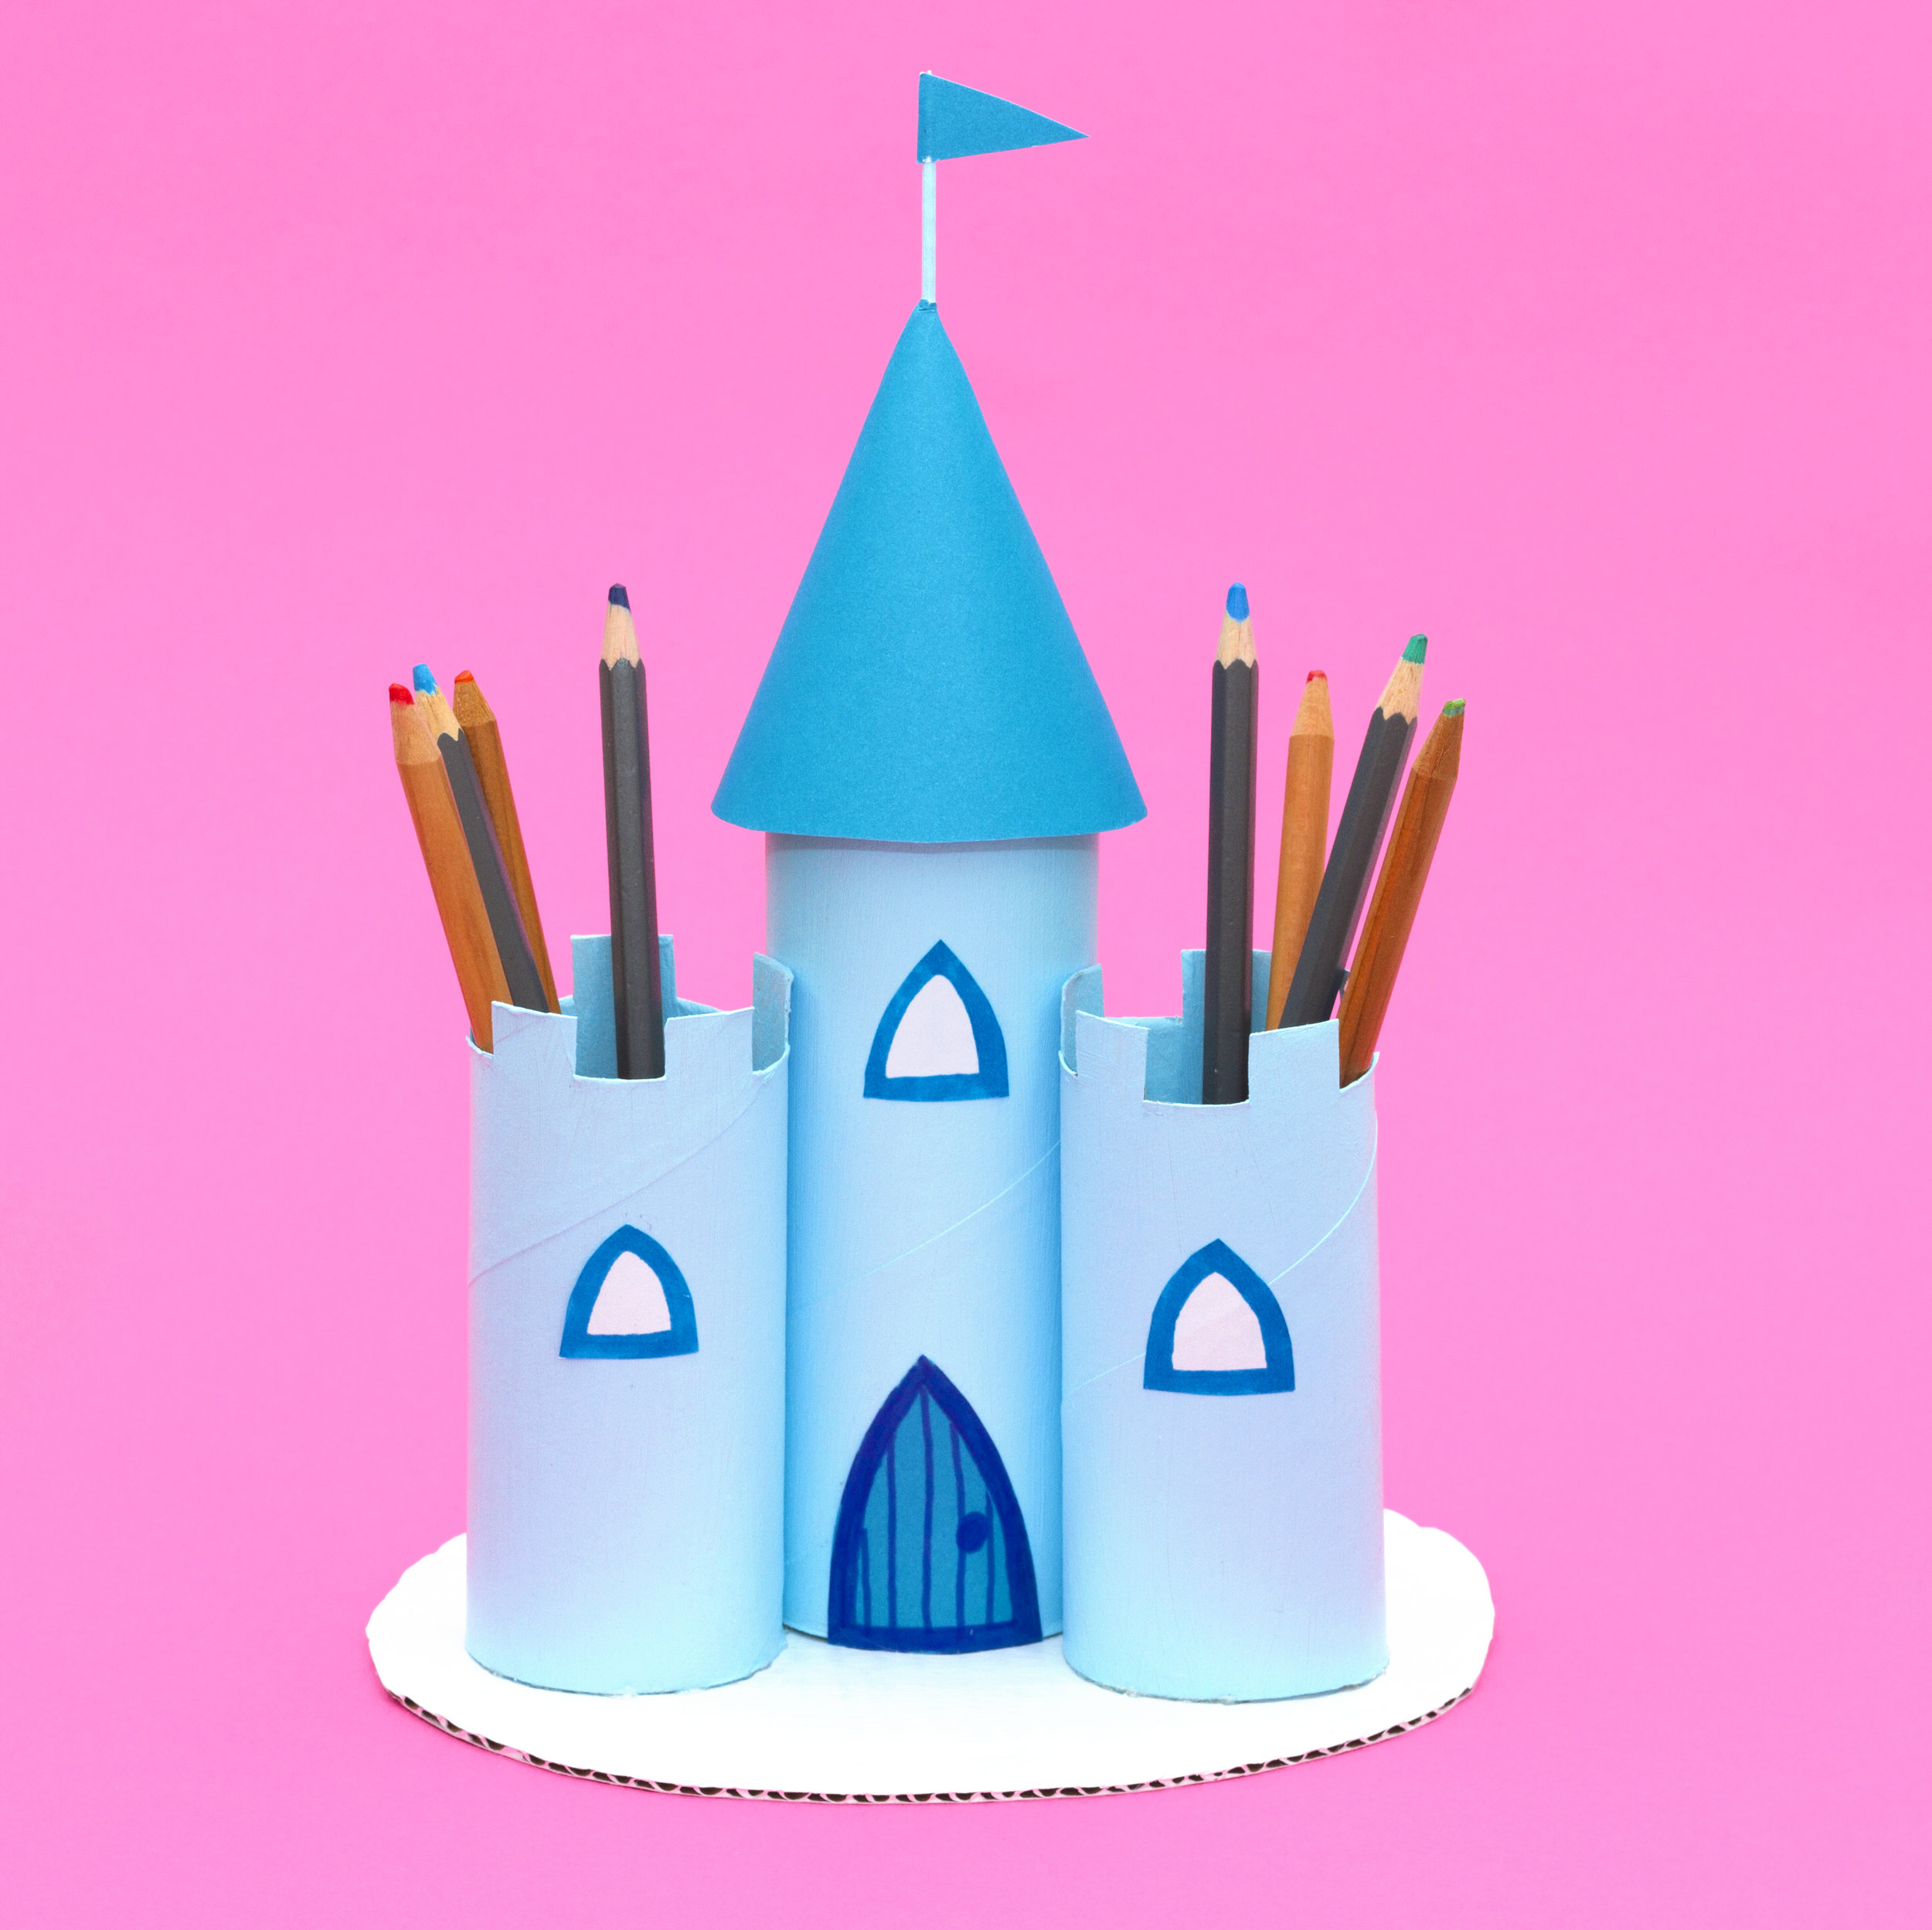 Use cardboard tubes to craft a pretty princess castle to store your pens and pencils in.